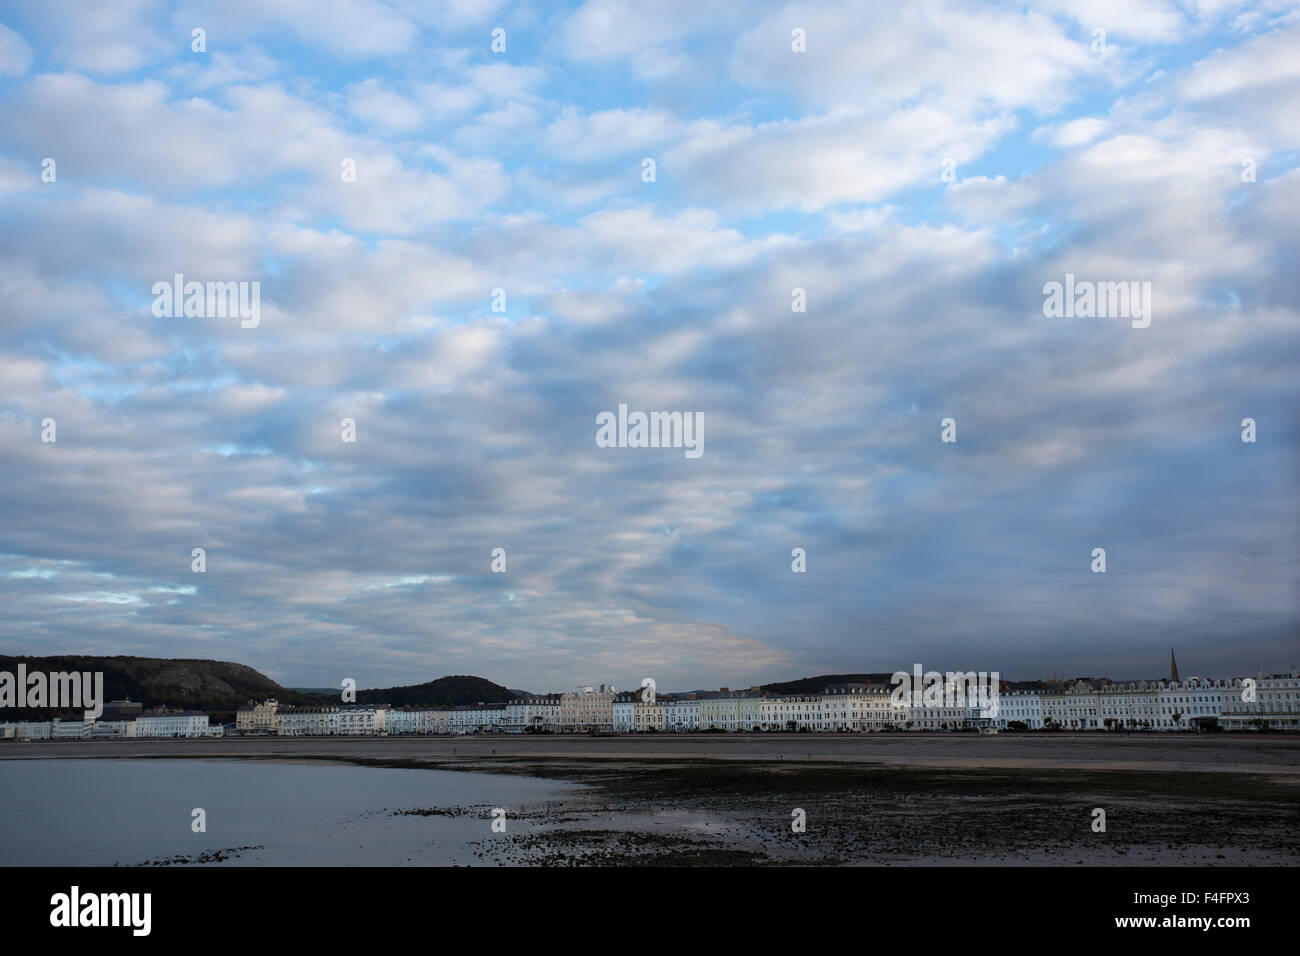 The Promenade, from the pier, Llandudno, Clwyd, North Wales. - Stock Image